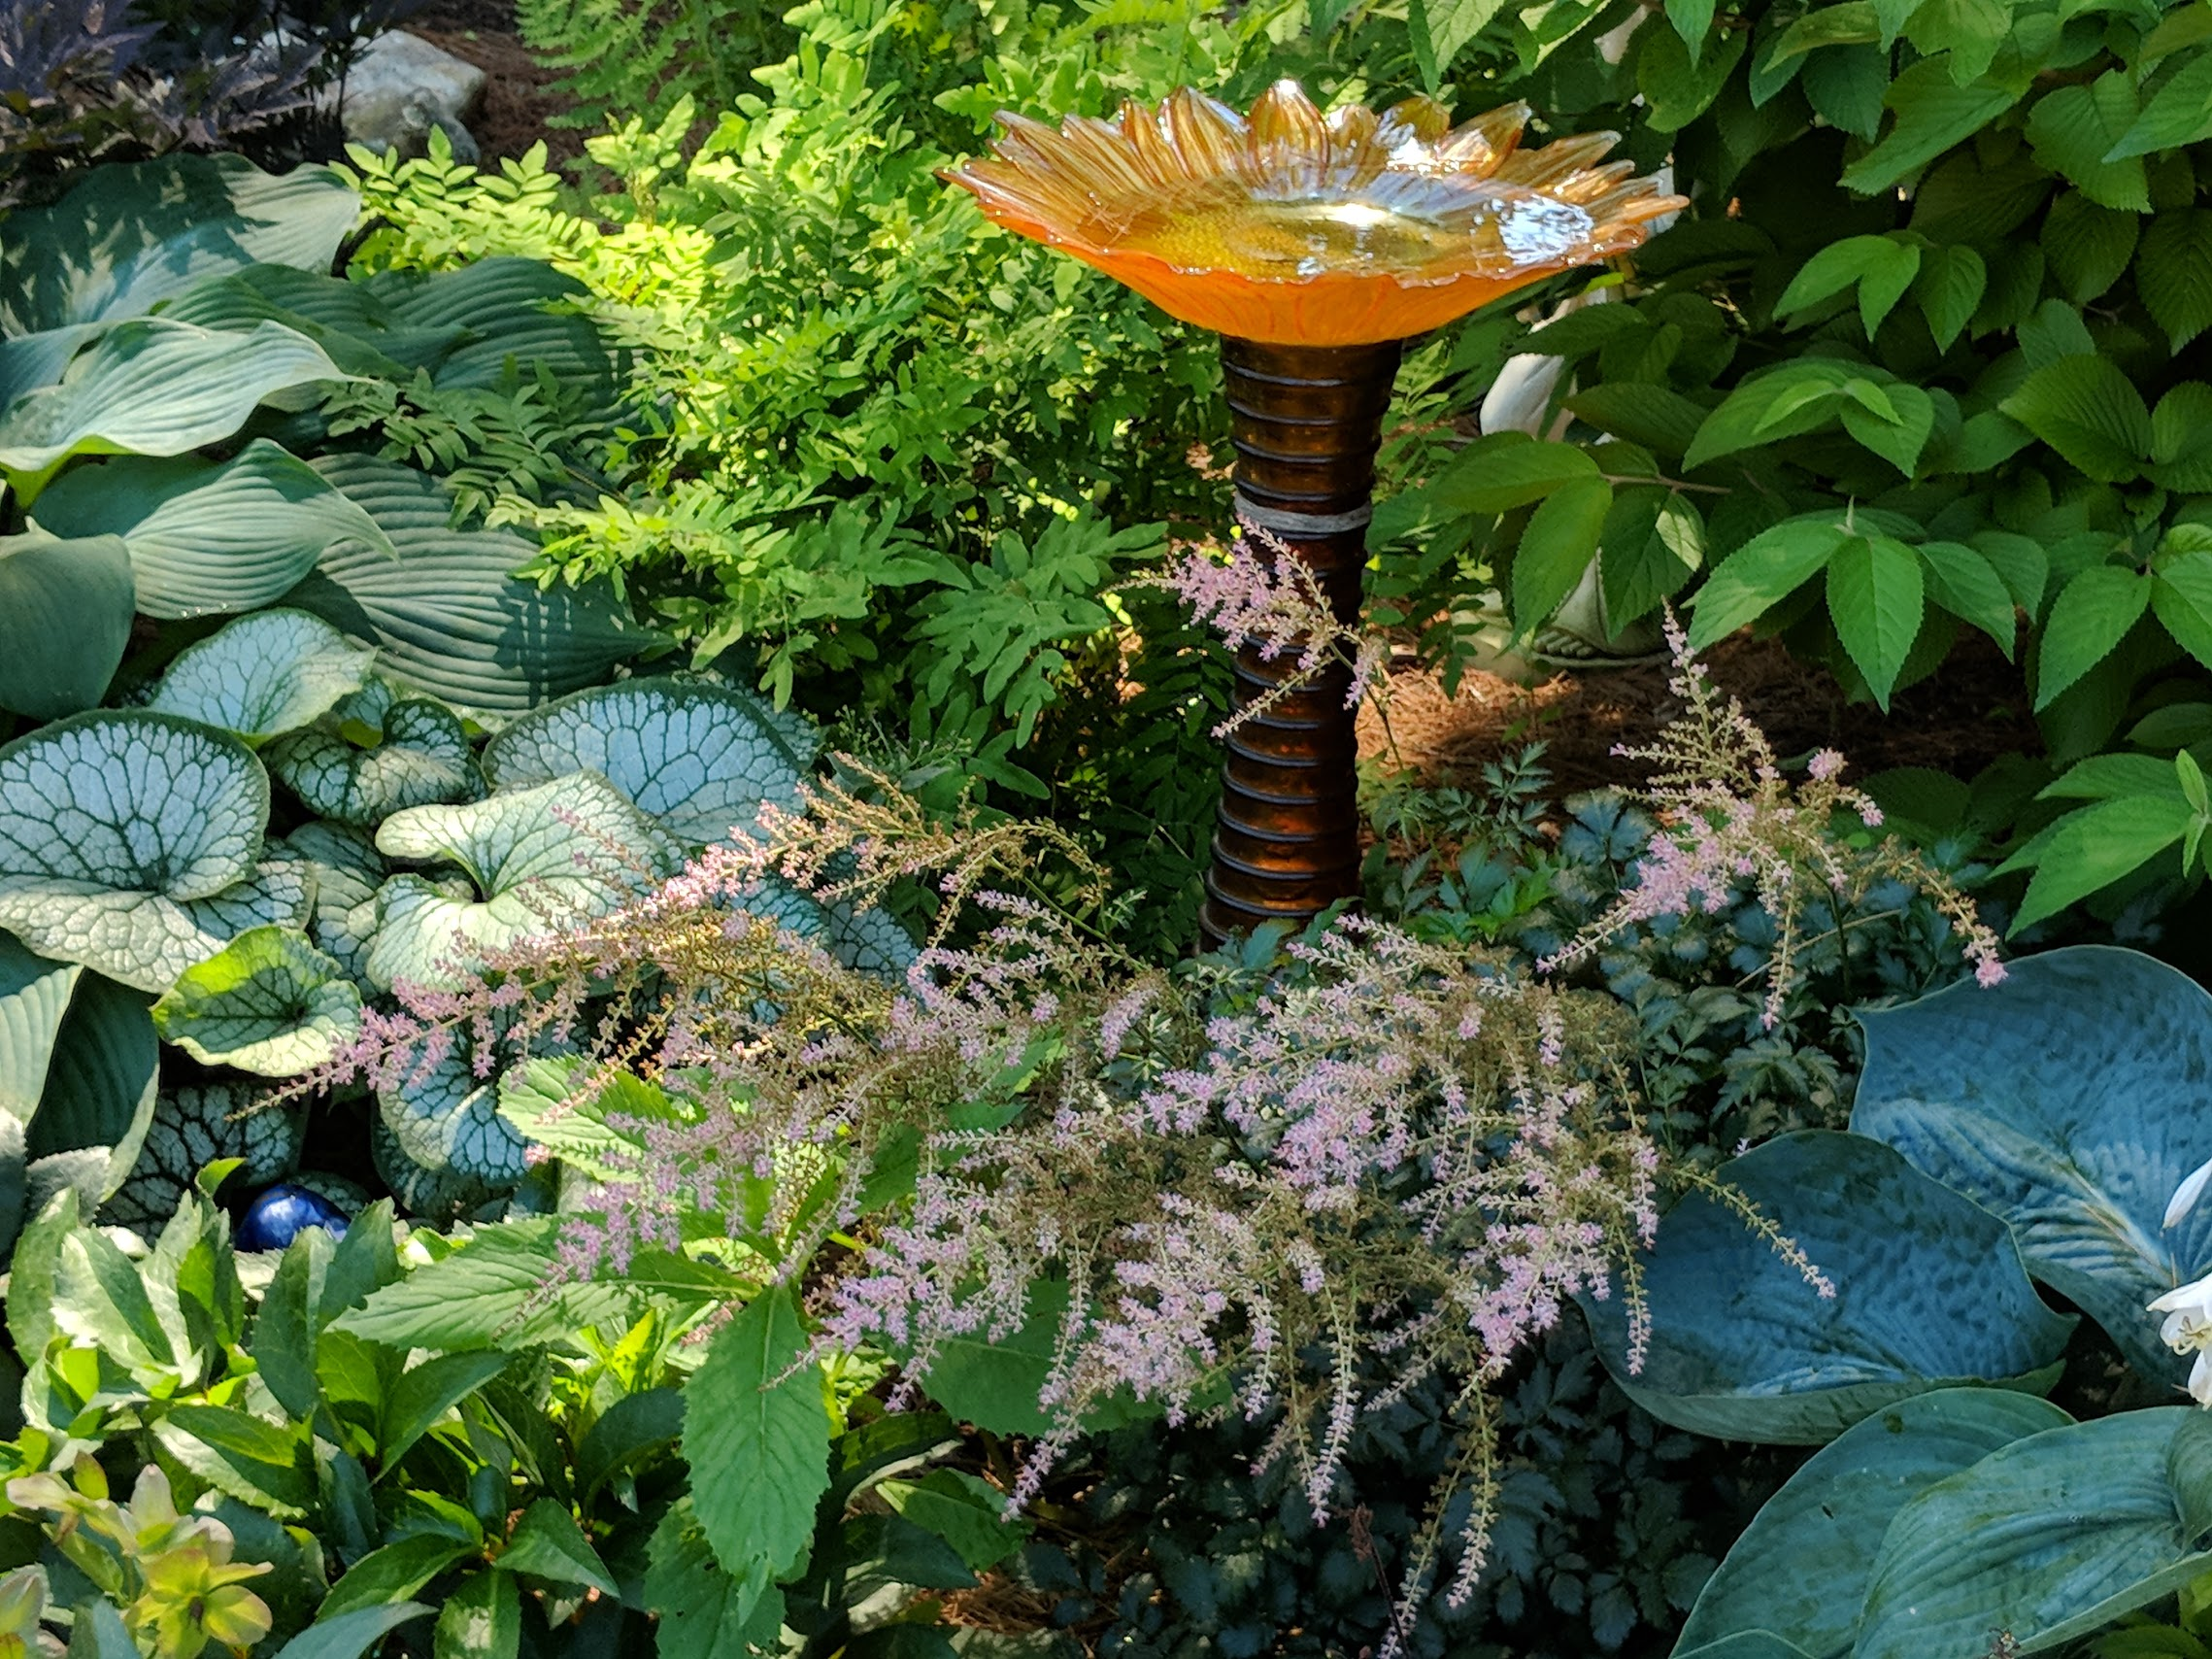 Locally made glass bird bath helps to break up dense foliage of hosta, ferns and brunnera and draw attention to the lovely pink astilbe blooms